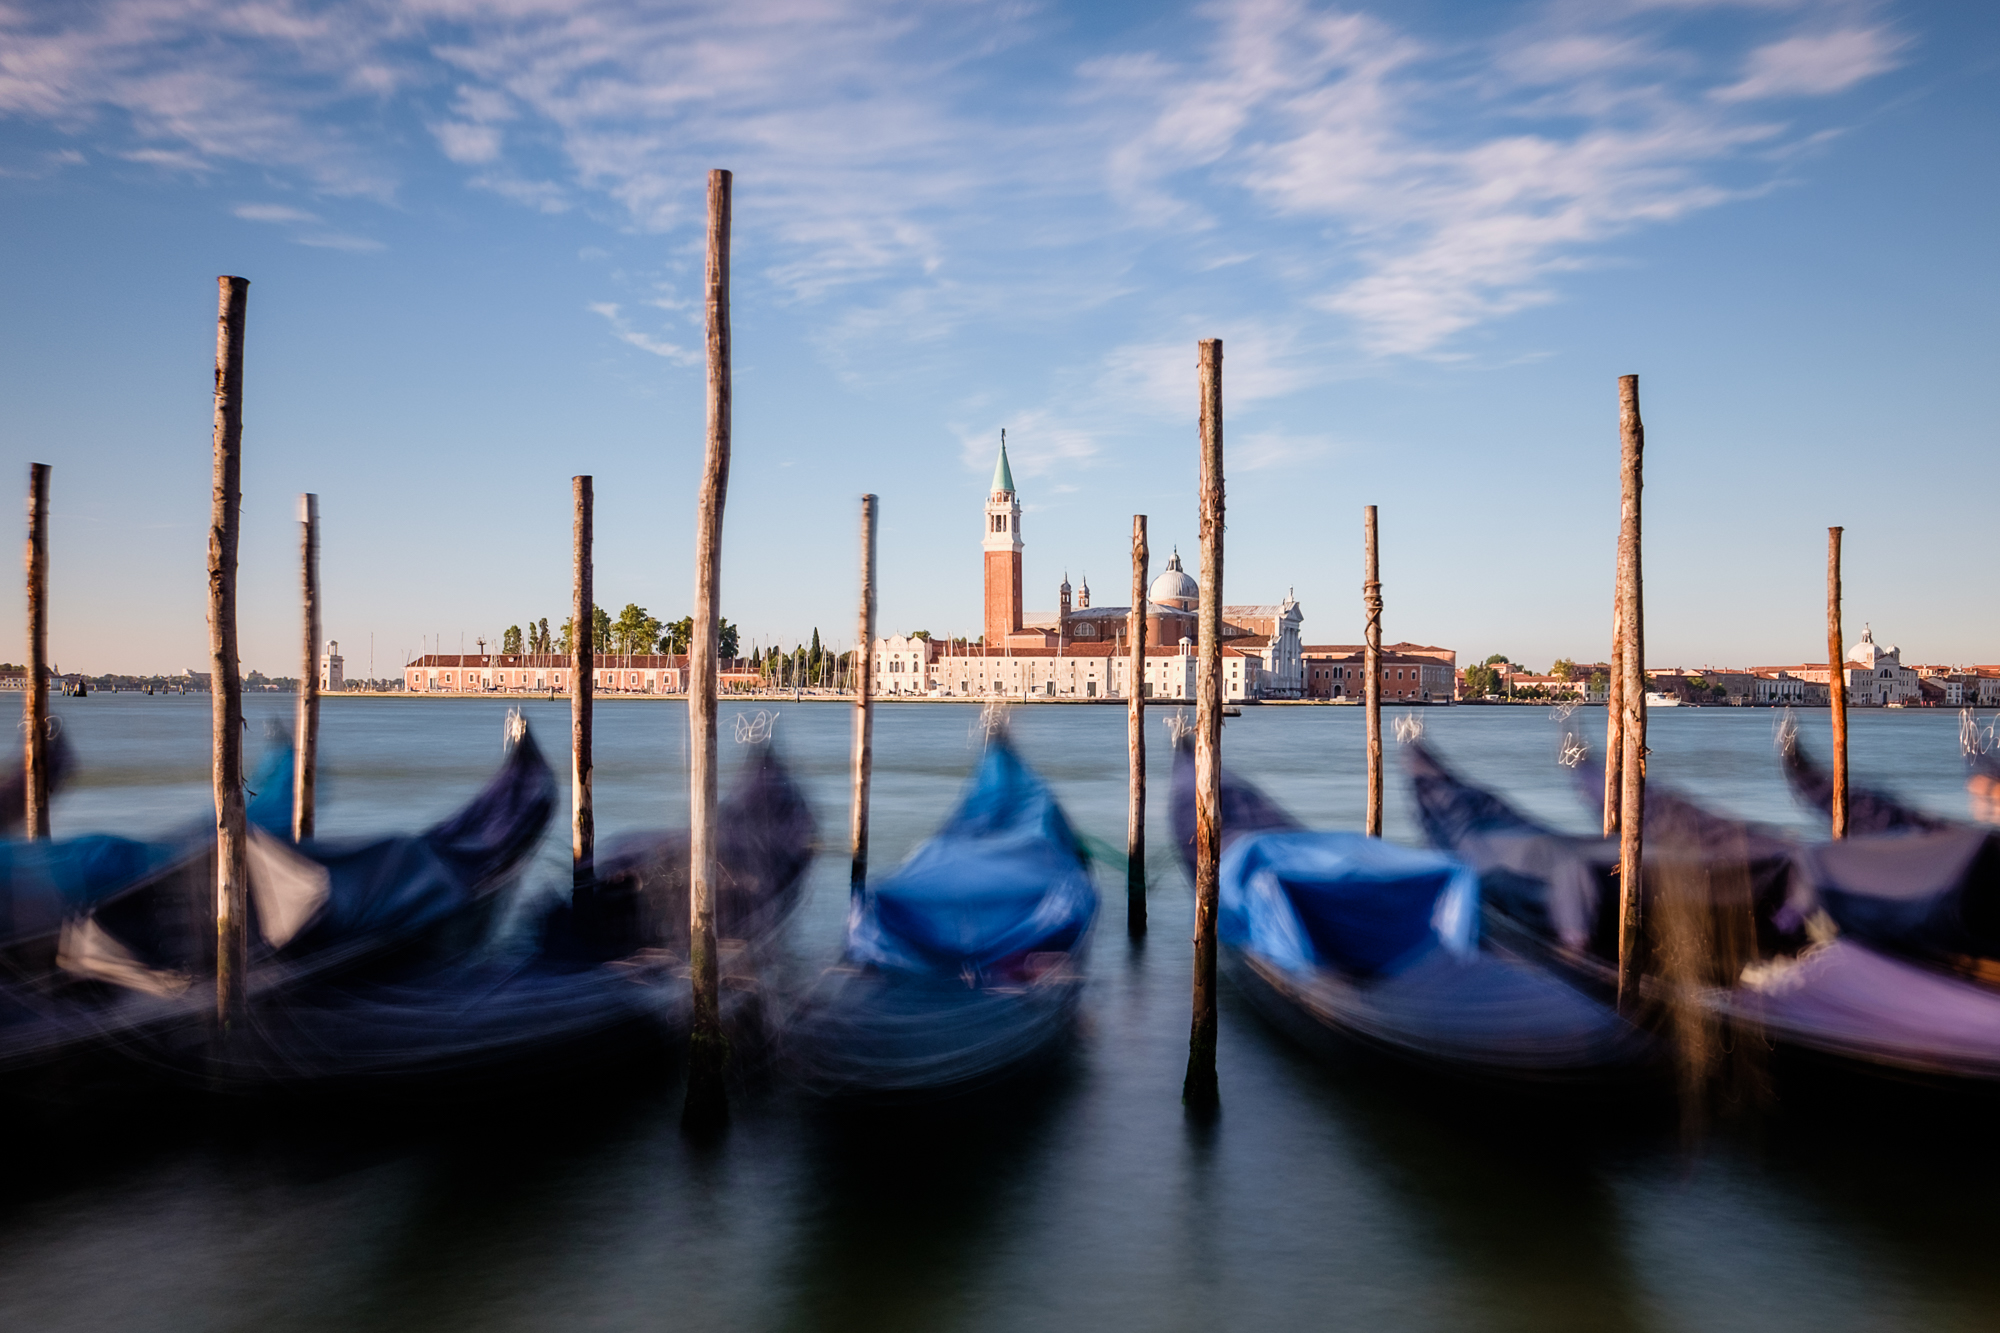 Blurry photo of moored gondolas on the Bacino San Marco in Venice taken by Trevor Sherwin